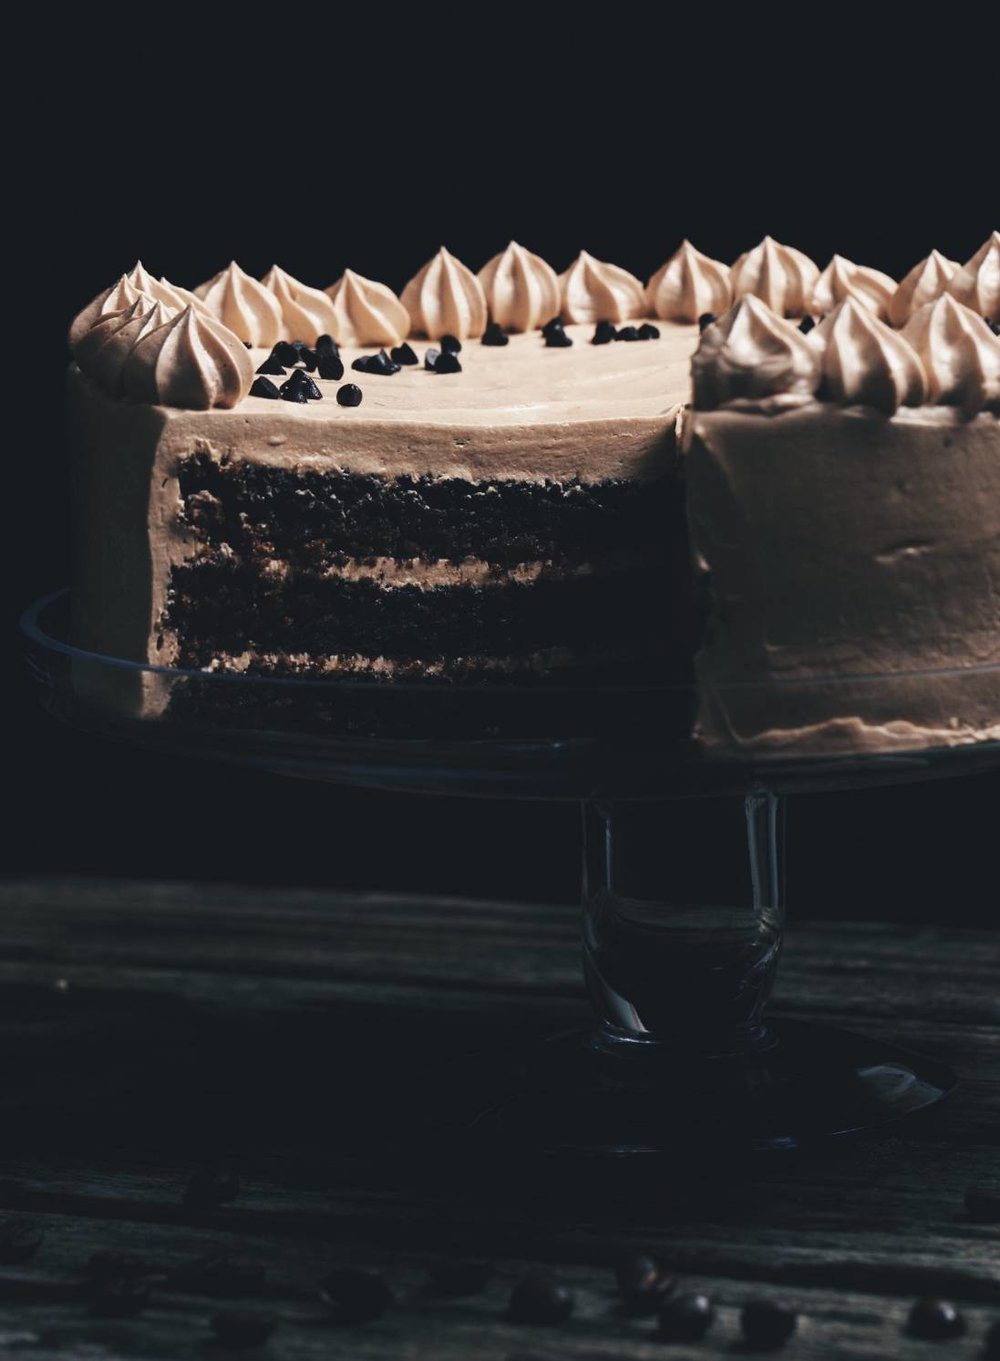 COFFEEBUTTERCAKE - but first, coffee